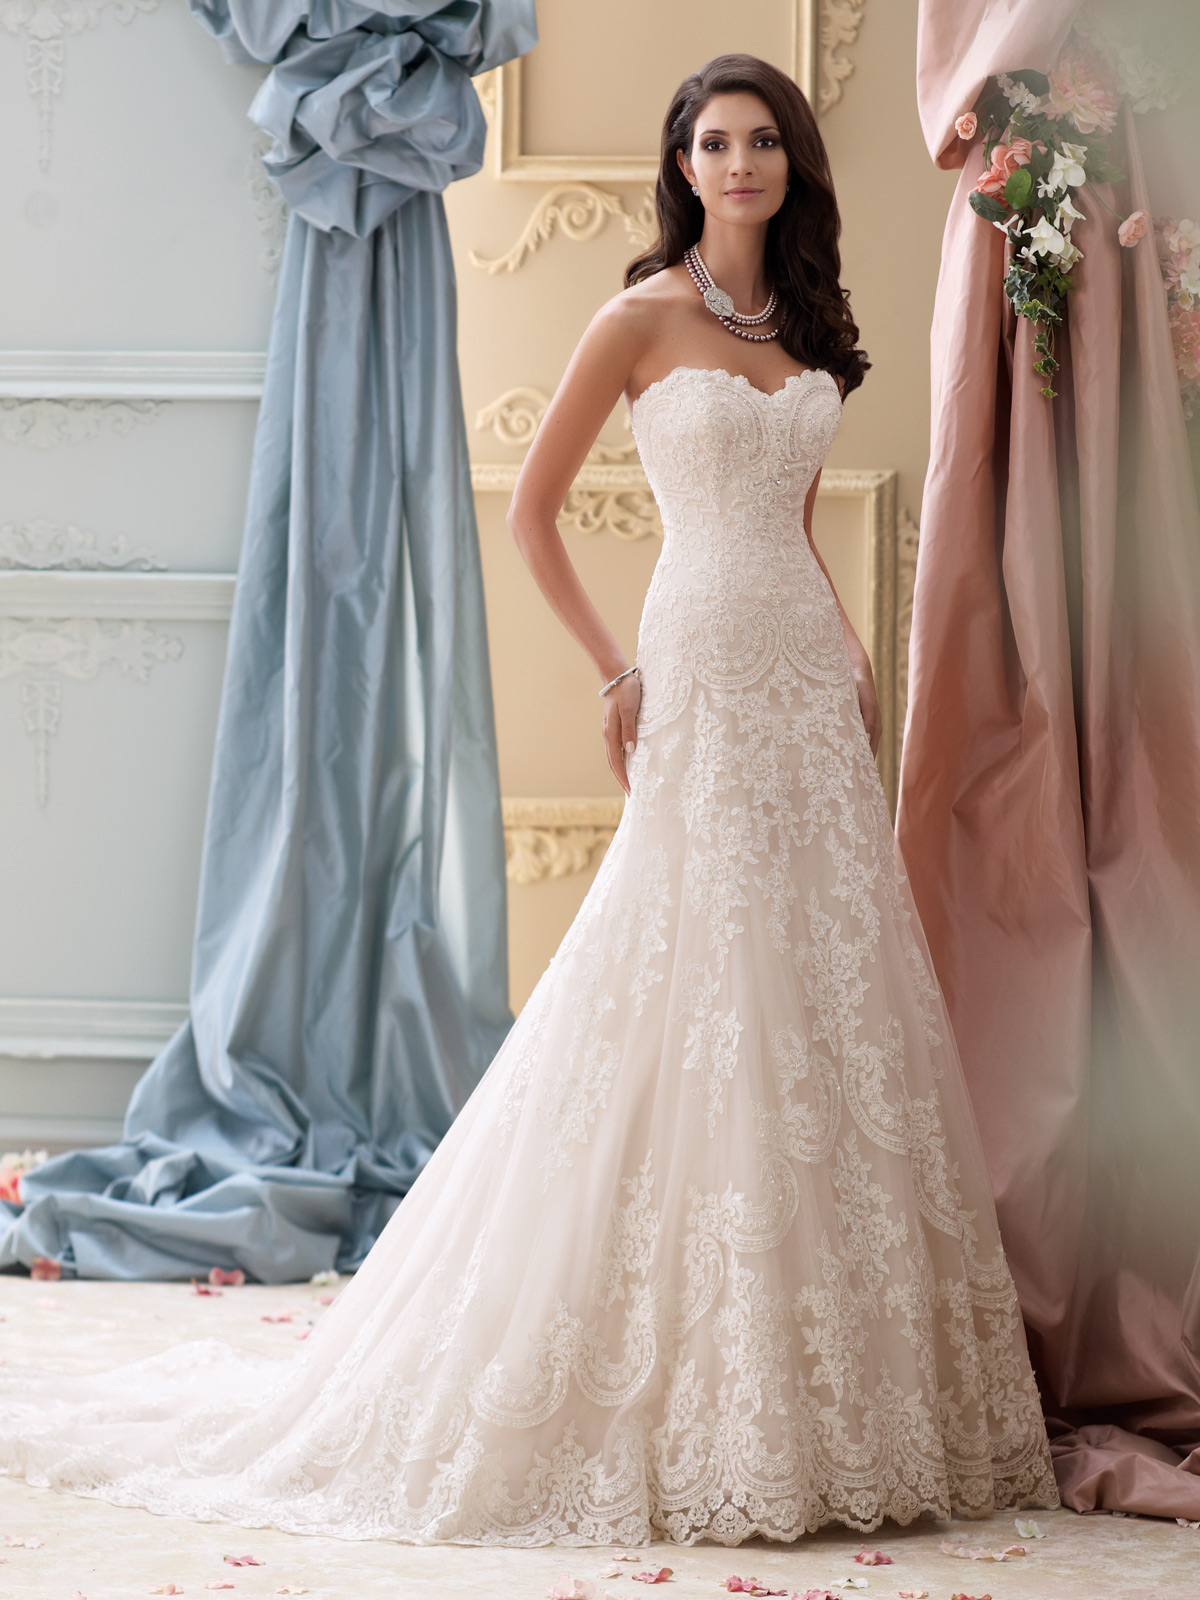 Share tale of two family wedding dresses with you bridal gowns wedding dresses junglespirit Choice Image